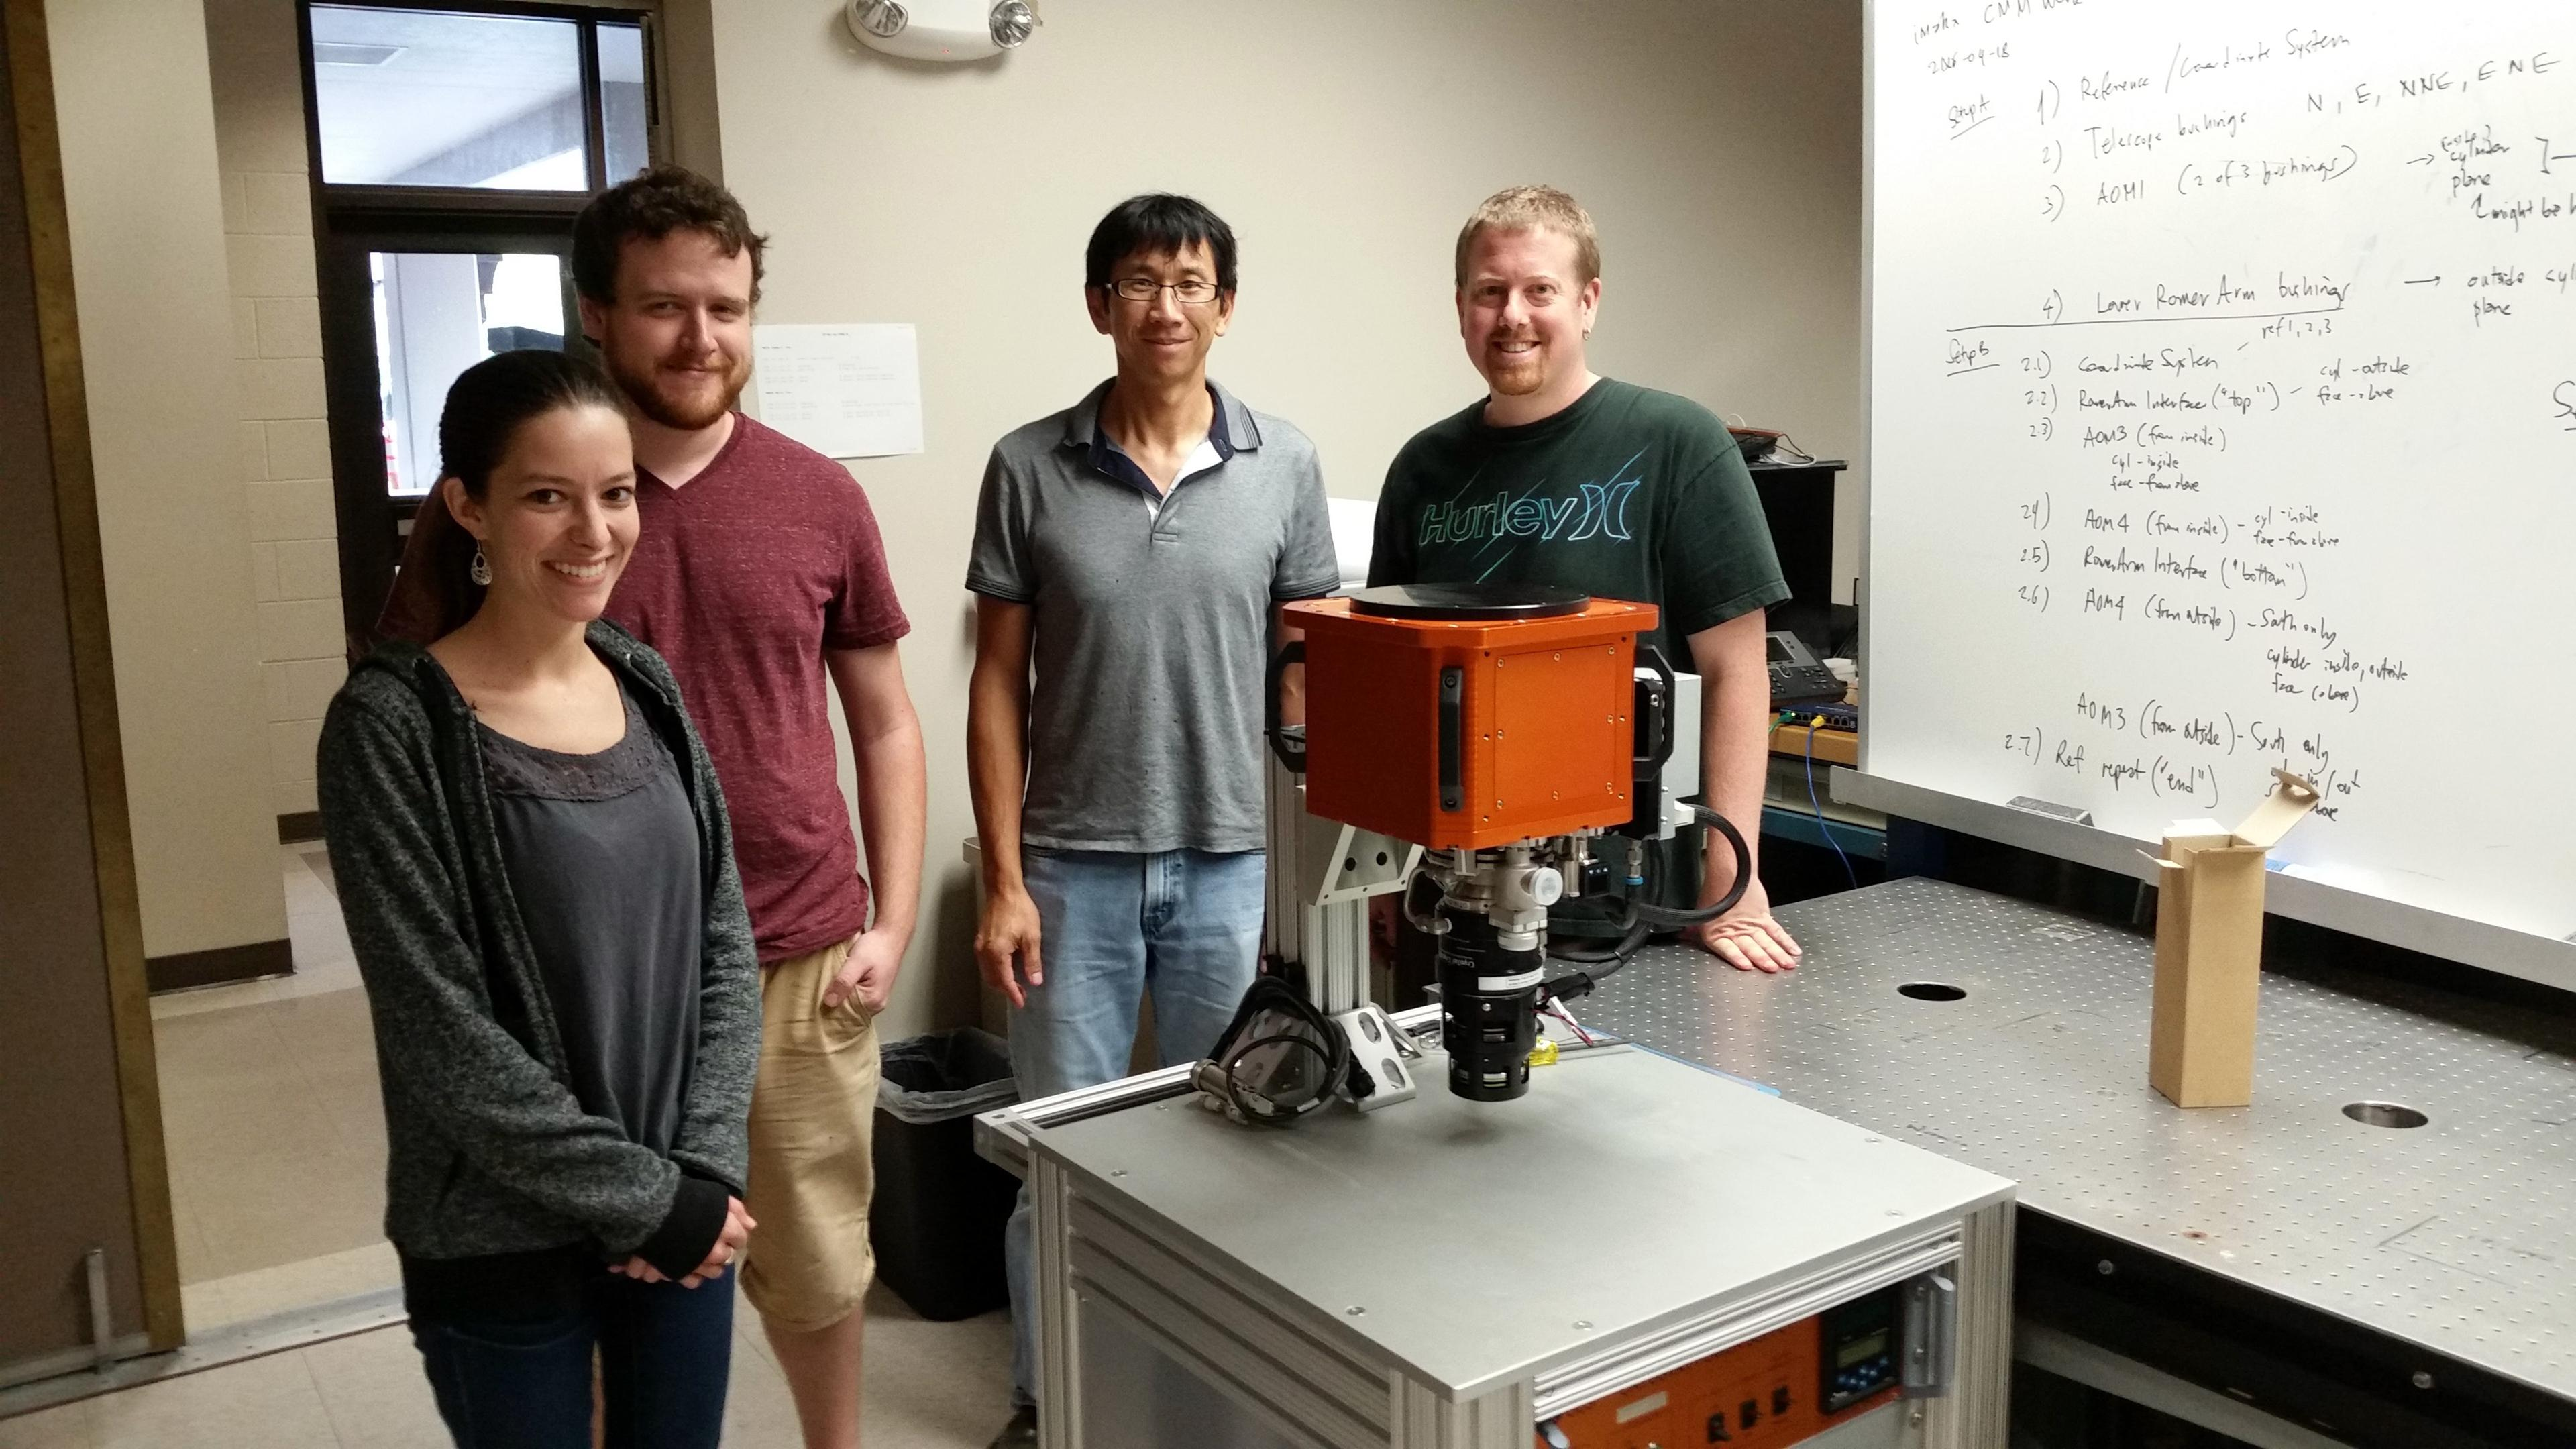 Mānoa: Astronomy at UH plays key role in 30 years of NSF